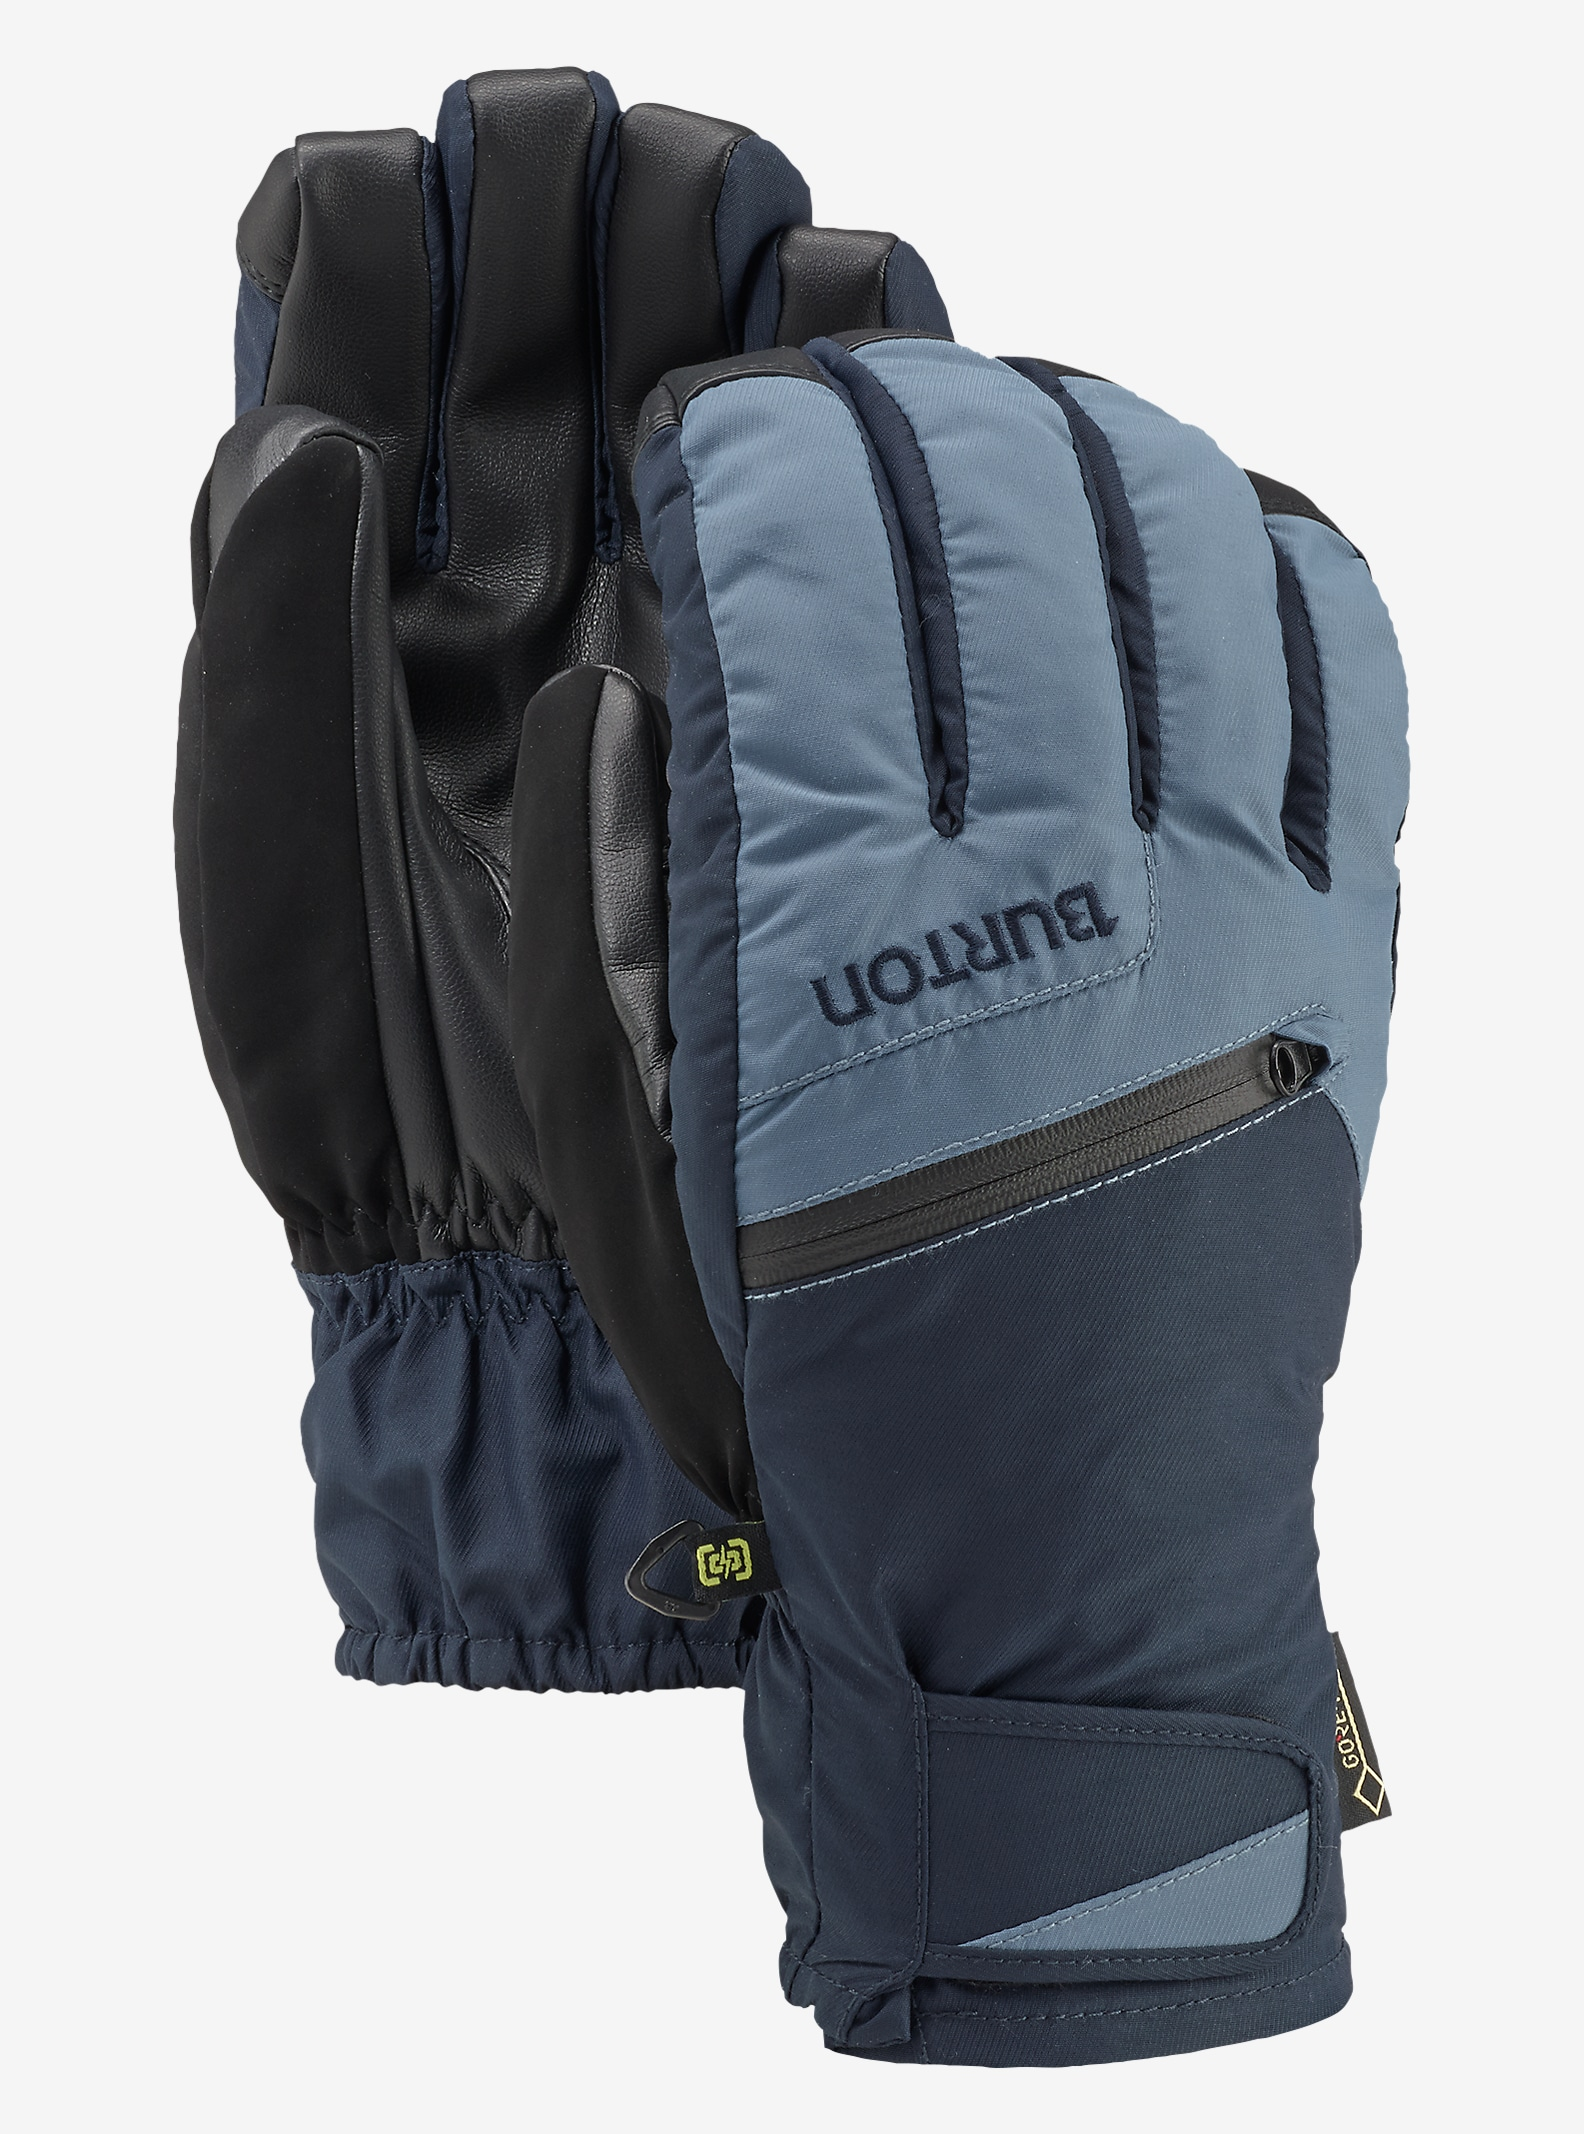 Burton GORE-TEX® Under Glove + Gore Warm Technology shown in Eclipse / Washed Blue